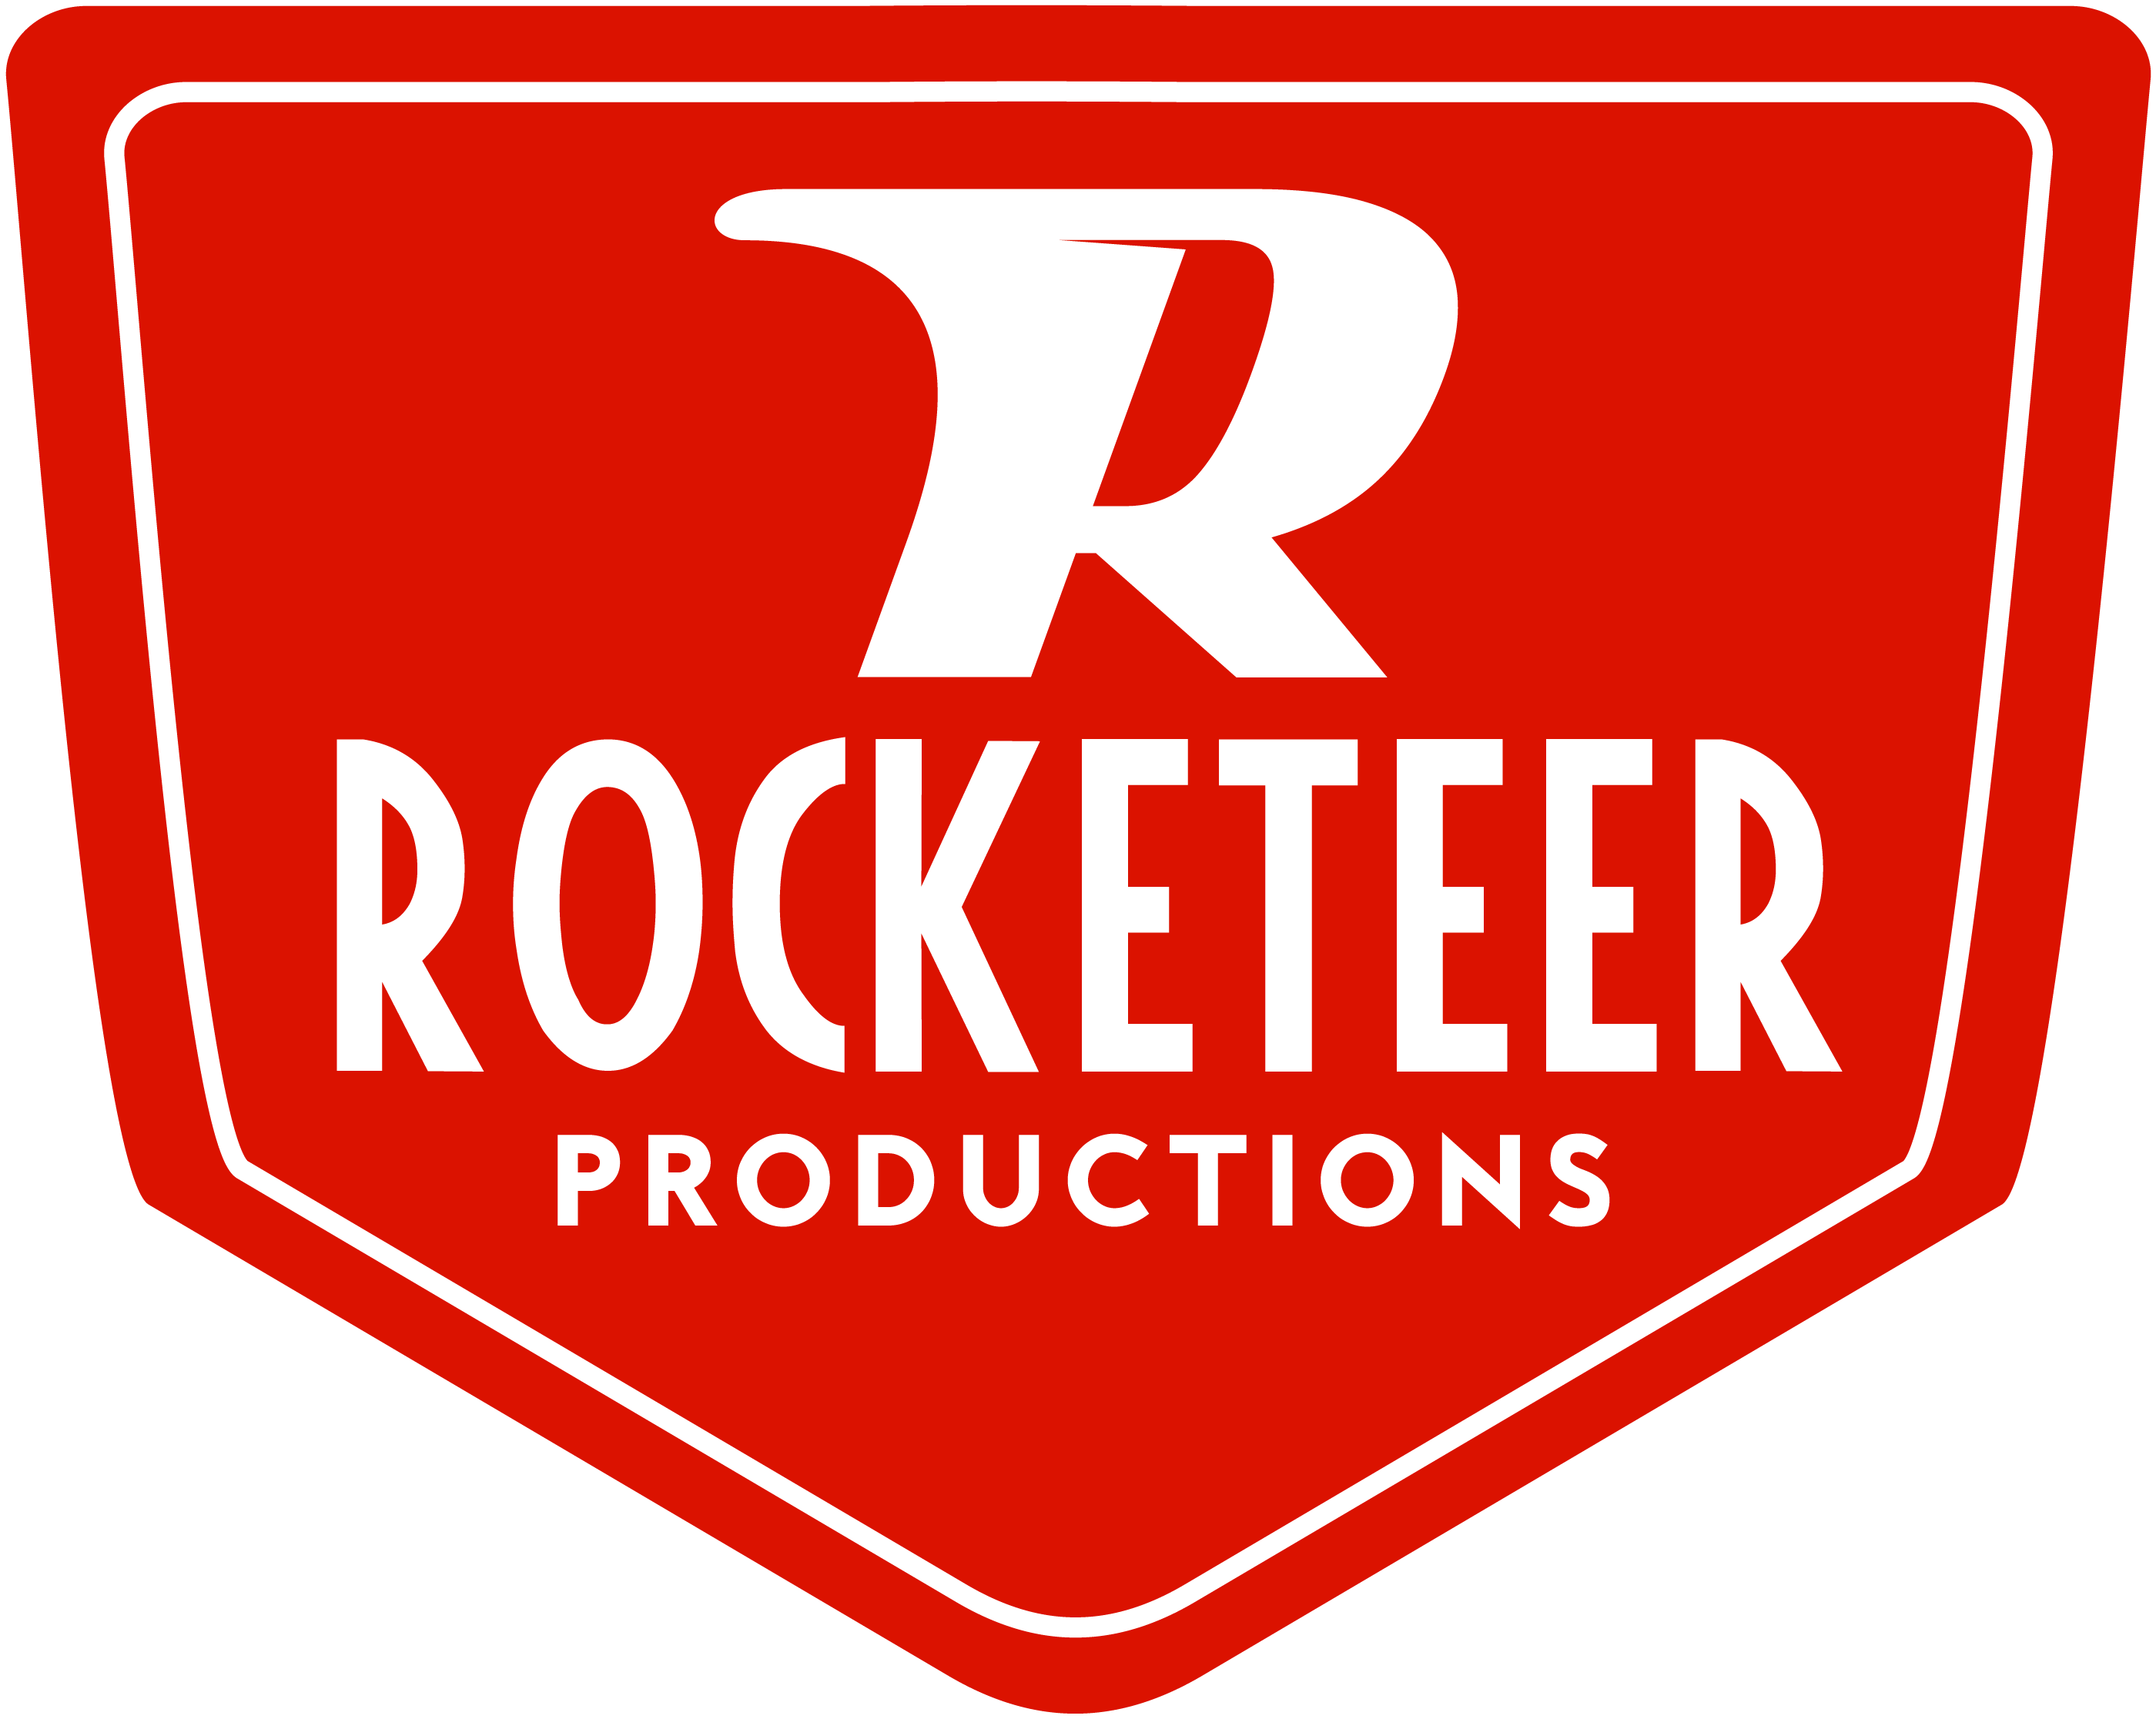 Rocketeer Productions Rocks Its First Year With Two Telly Award Wins